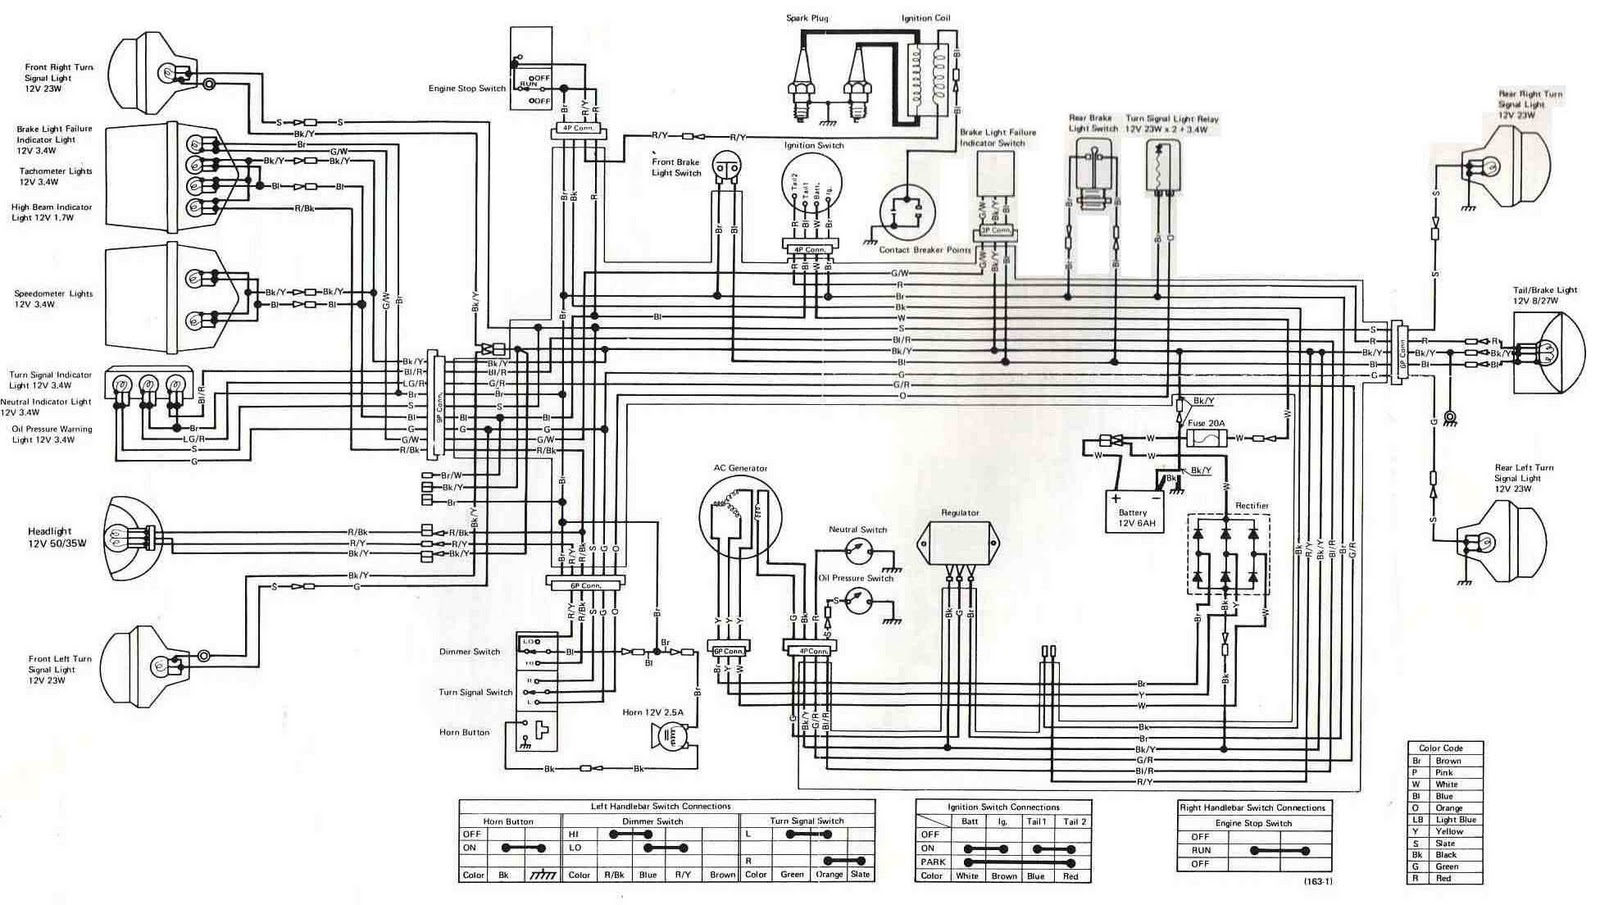 Kawasaki+KZ400+1975+Electrical+Wiring+Diagram kawasaki wiring diagram free toyota wiring diagrams \u2022 wiring kawasaki mule 600 wiring diagram at nearapp.co